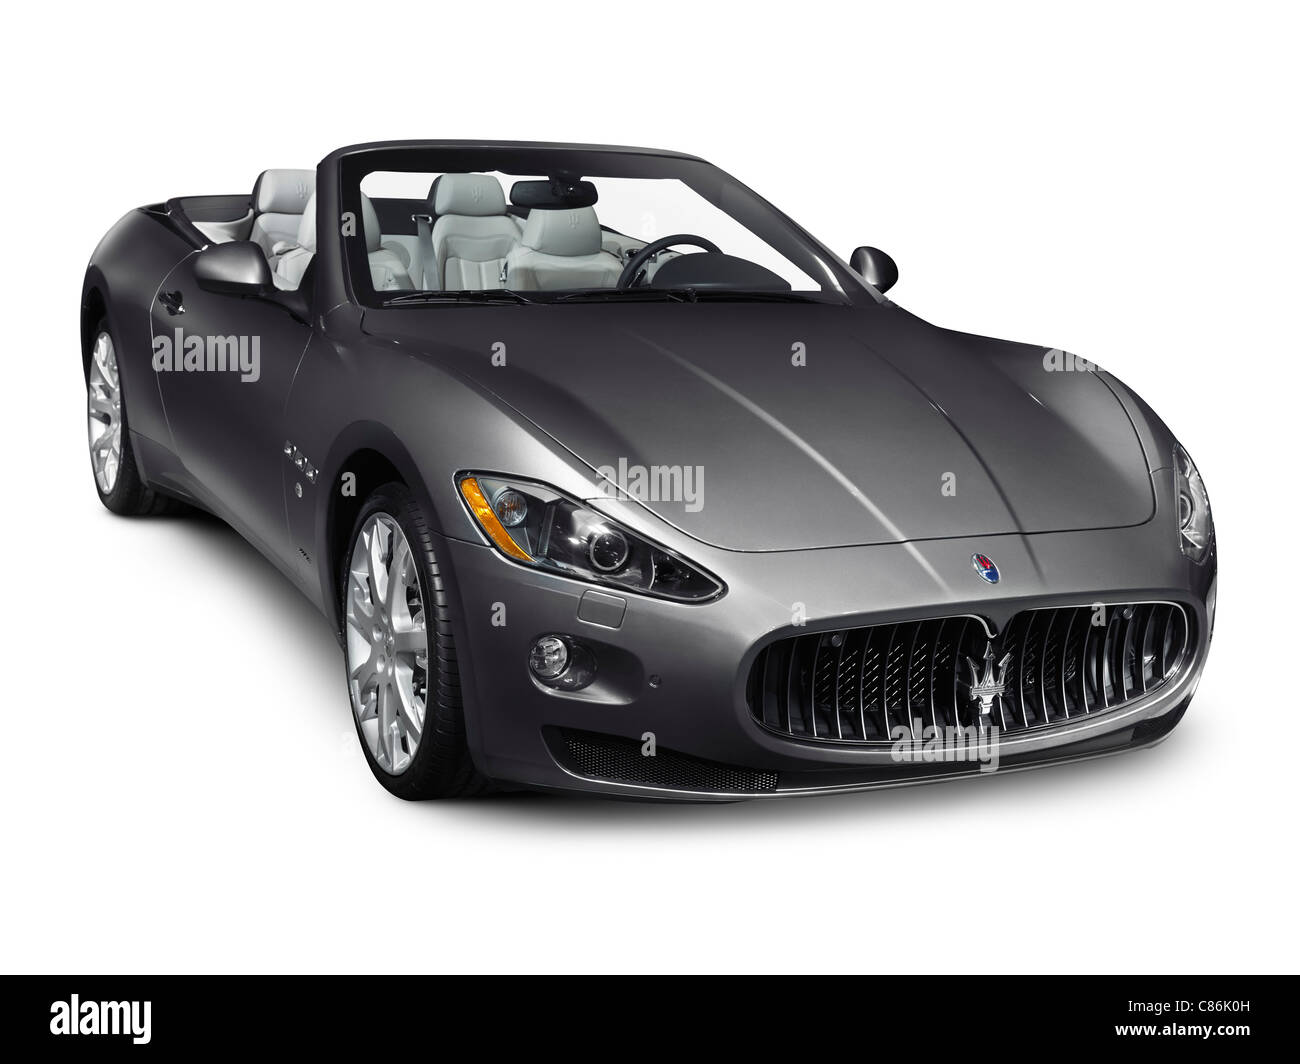 2011 Maserati GranTurismo Convertible GranCabrio luxury car isolated on white background - Stock Image